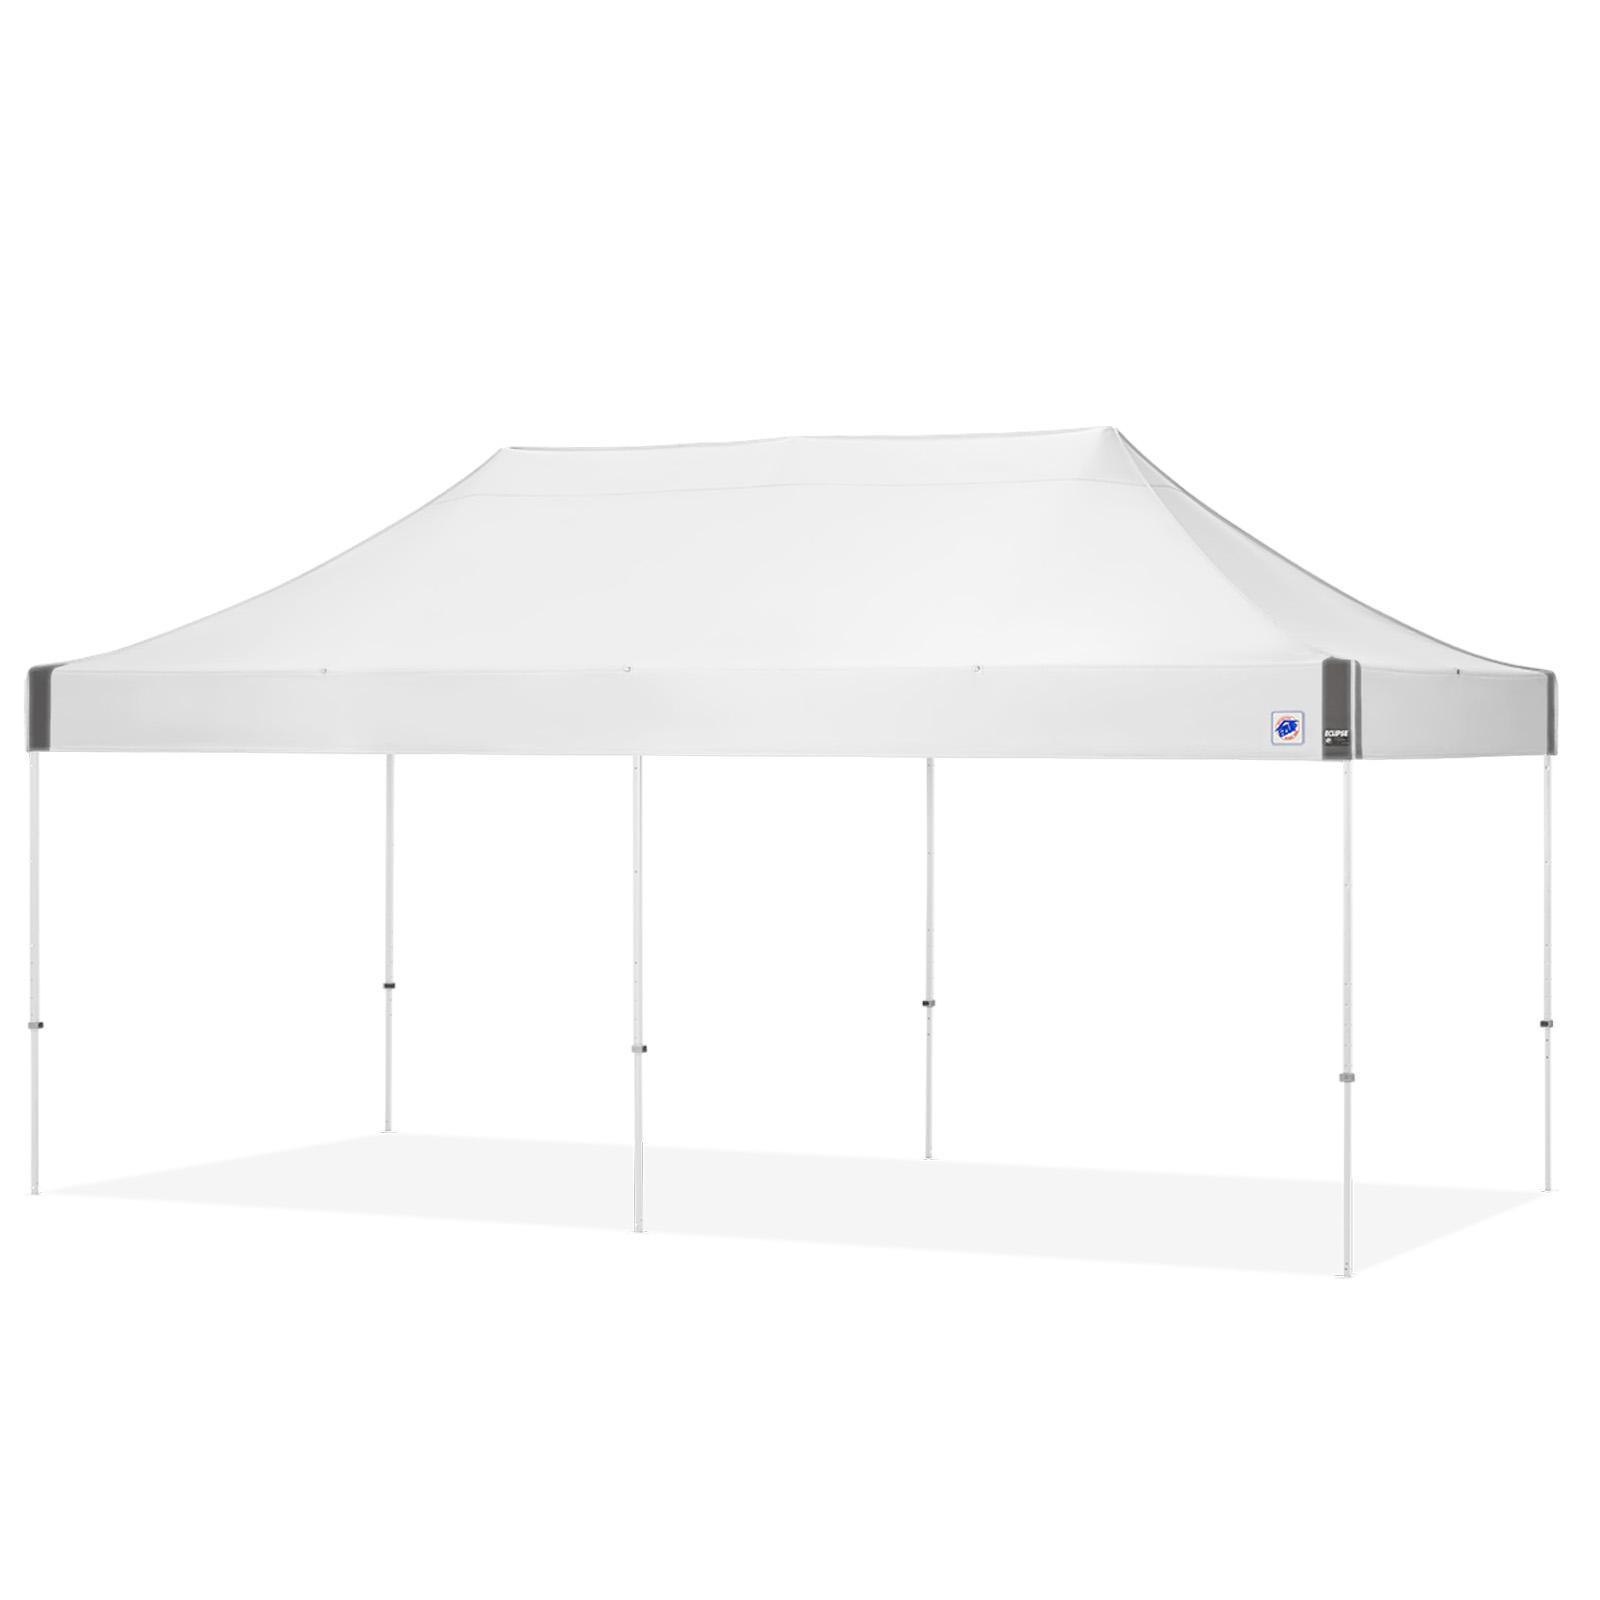 E-Z UP Eclipse 10 x 20 ft. Canopy with Carbon Steel Frame White/White - EC3STL20KFWHTWH